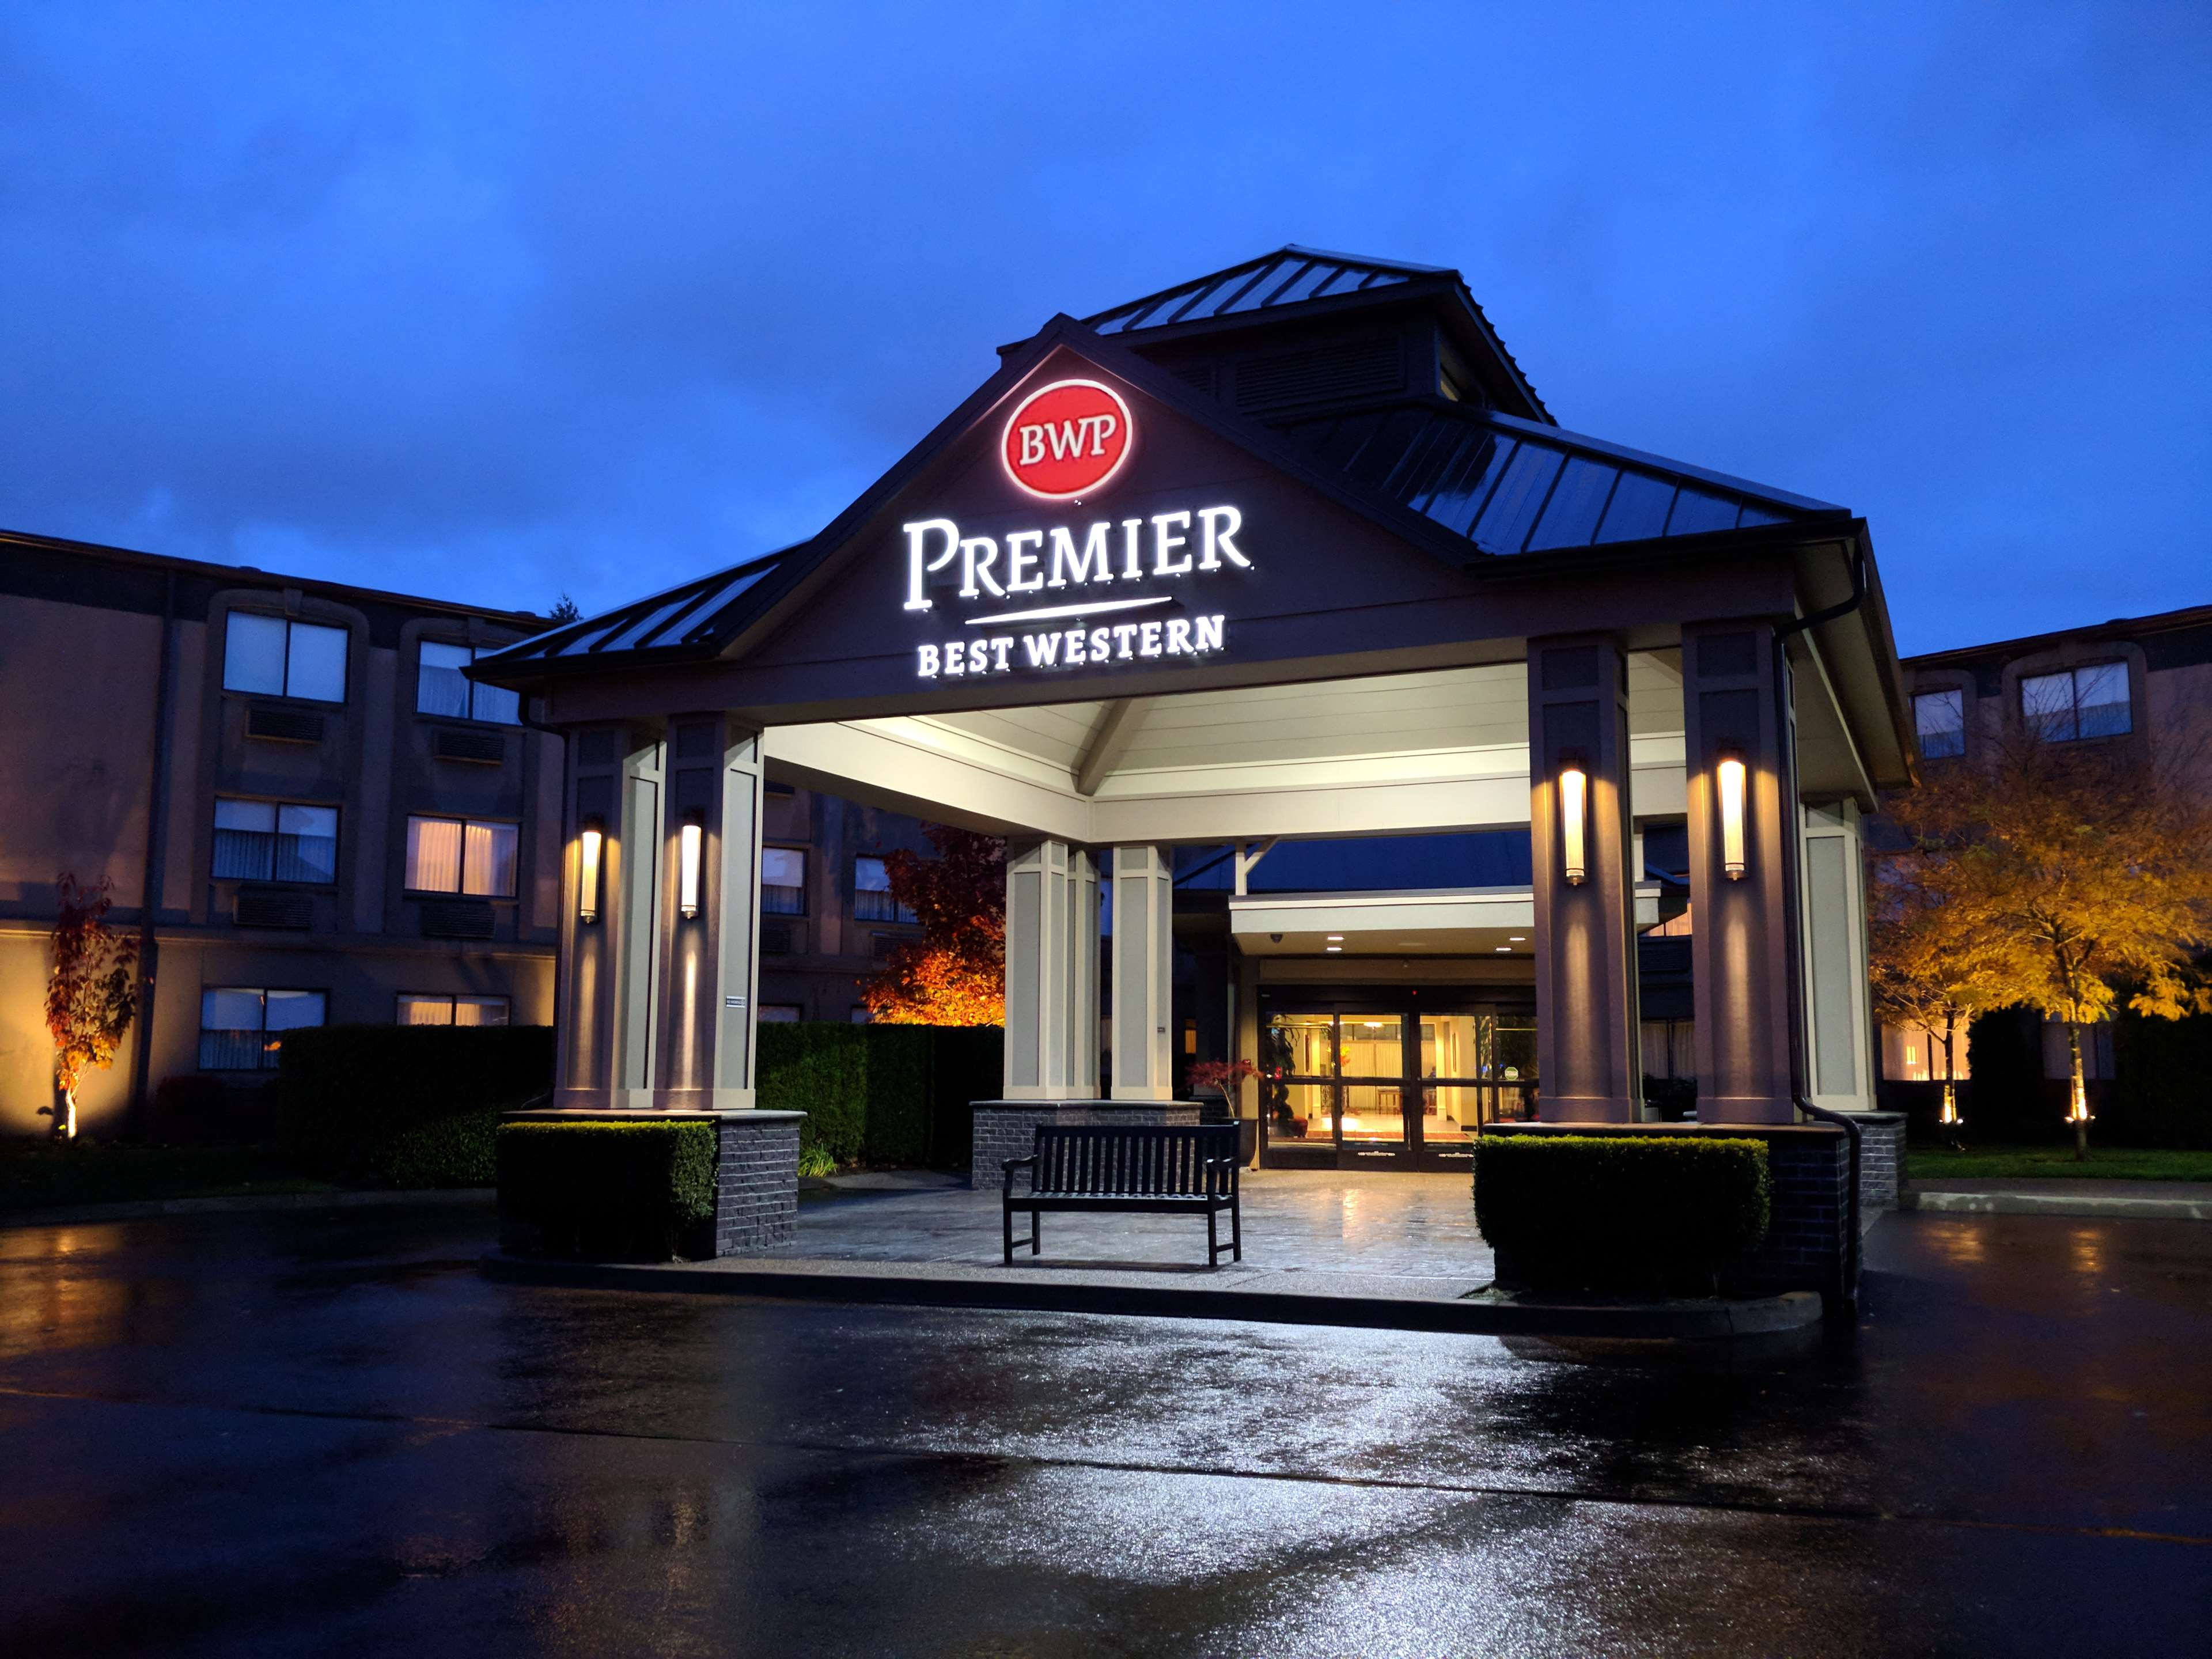 Best Western Premier Plaza Hotel & Conference Center. 4 Surfside Court Private Holiday Home. Hotel Aryaduta Medan. Le Moulin Du Roc Hotel. Leicester Marriott Hotel. Peppermint Hotel West Gurgaon. Treff Hotel Munster City Centre. Inn At Depot Hill. Romance Another Story In Pai Hotel